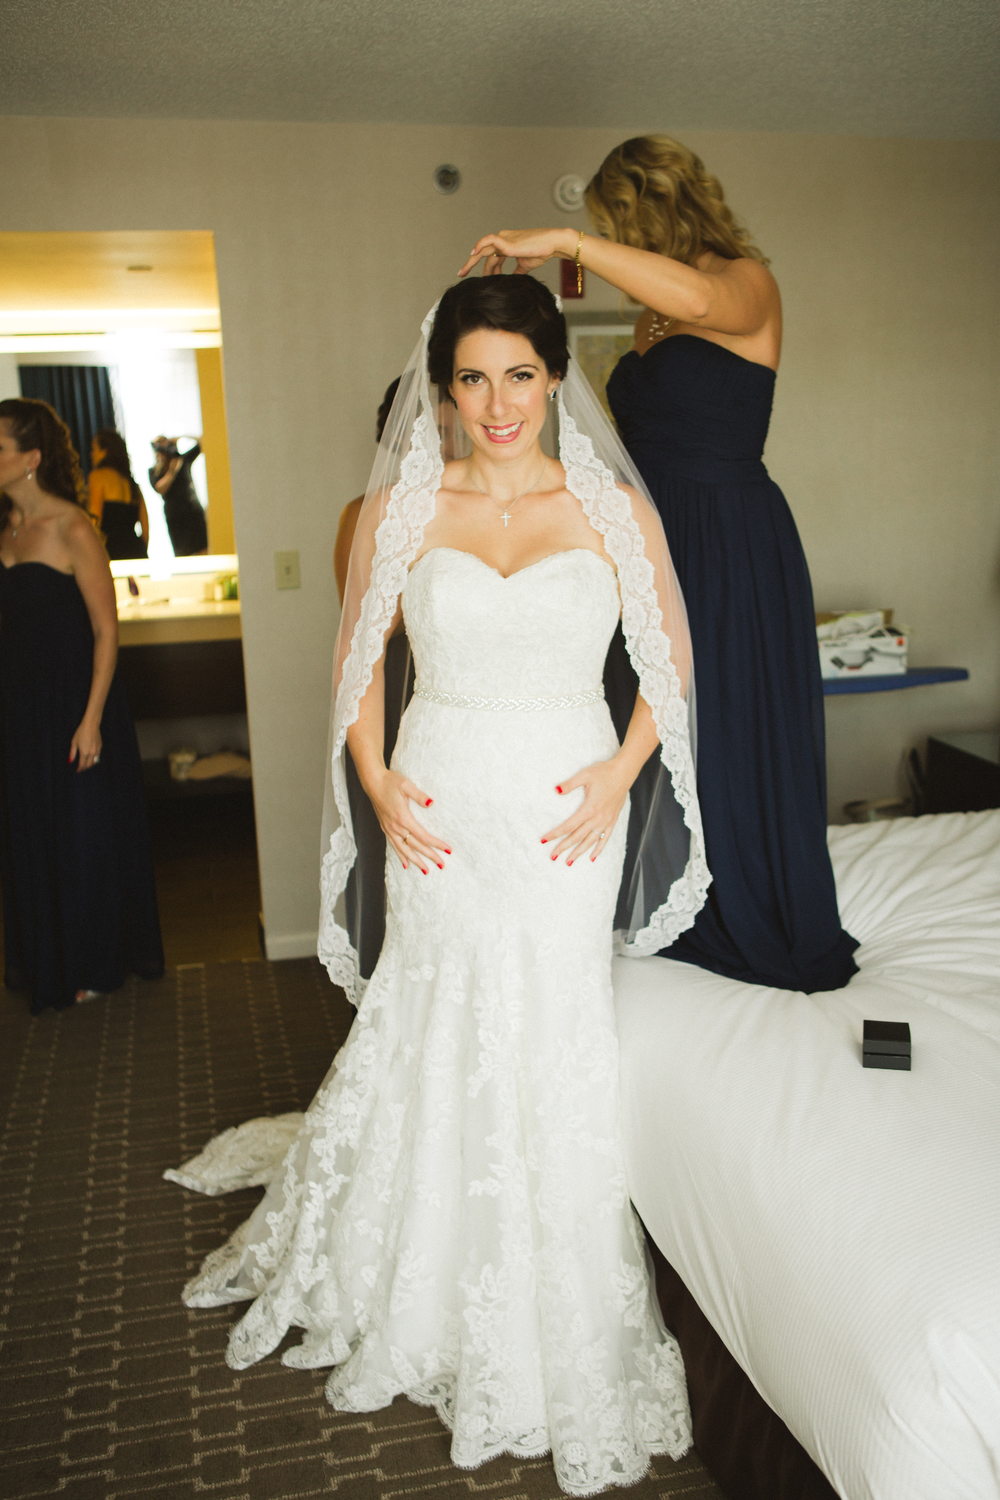 Vness_Photography_Wedding_Photographer_Washington-DC_Fish_Wedding-168.JPG